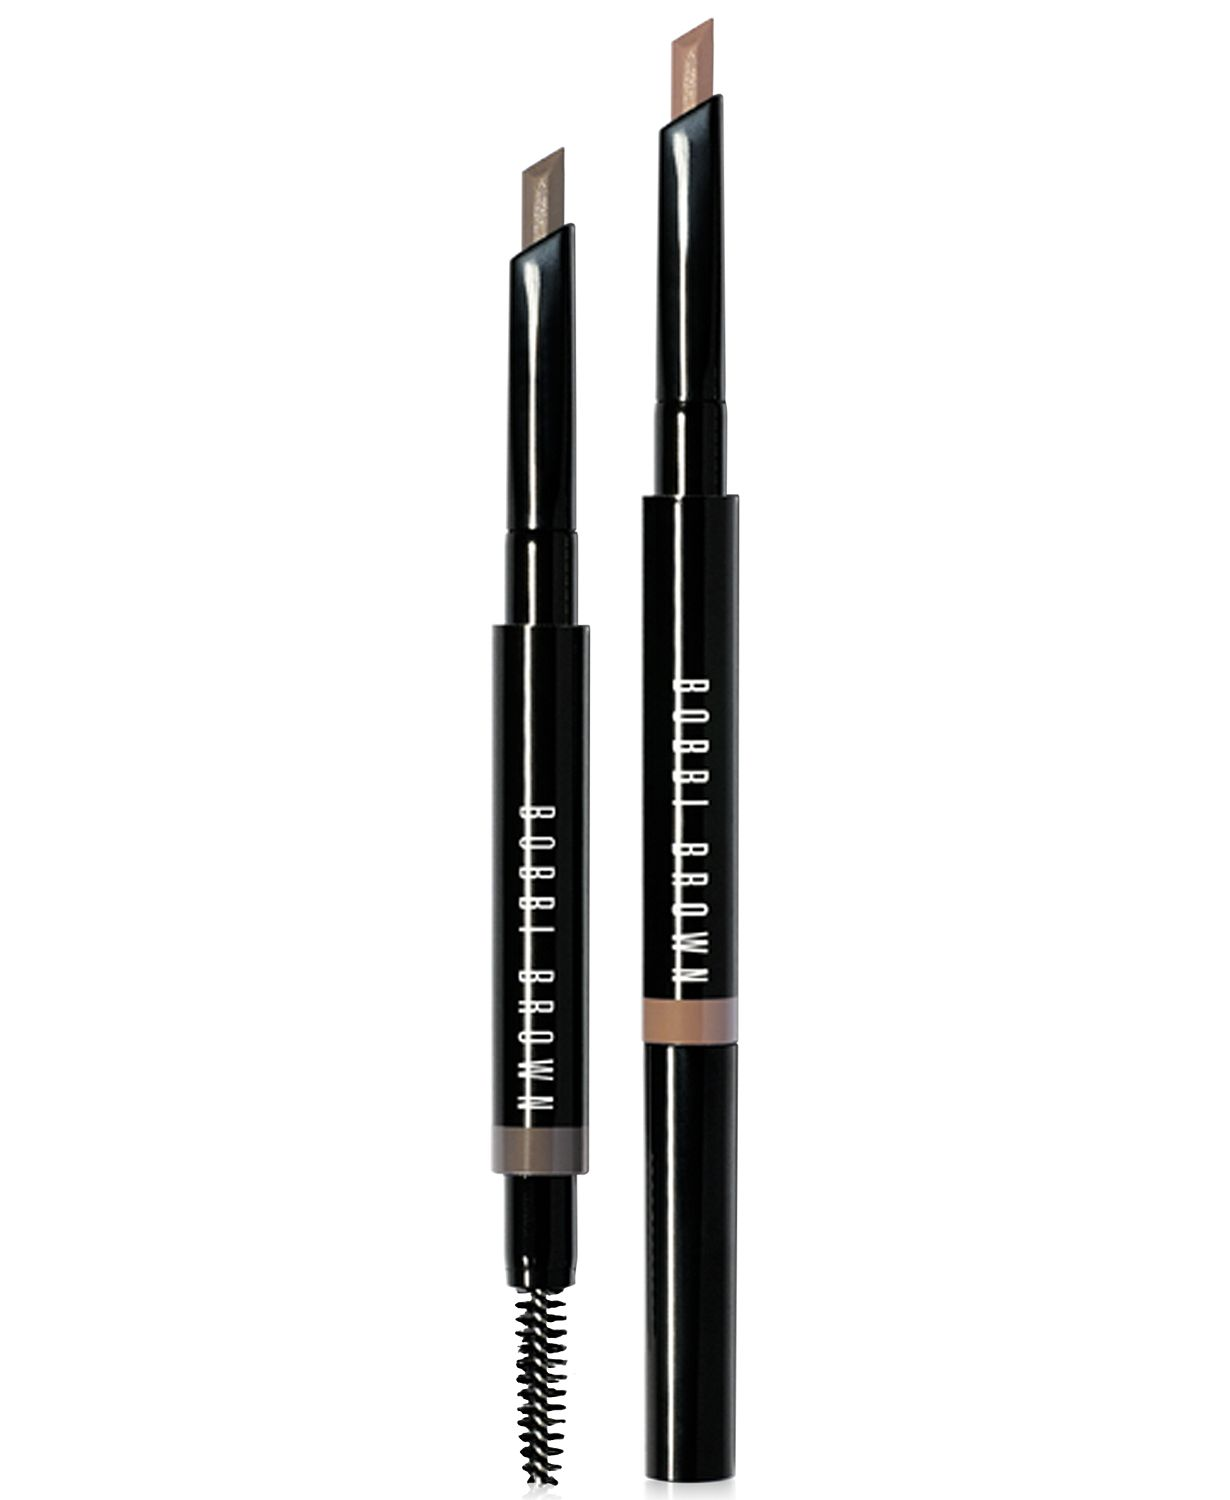 Bobbi Brown Perfectly Defined Long Wear Brown Pencil - come discover Over 50 Daily Beauty: Gentle Rhythms for Skin, Makeup & Hair As Well As Quotes to Pin and Outfit Ideas.